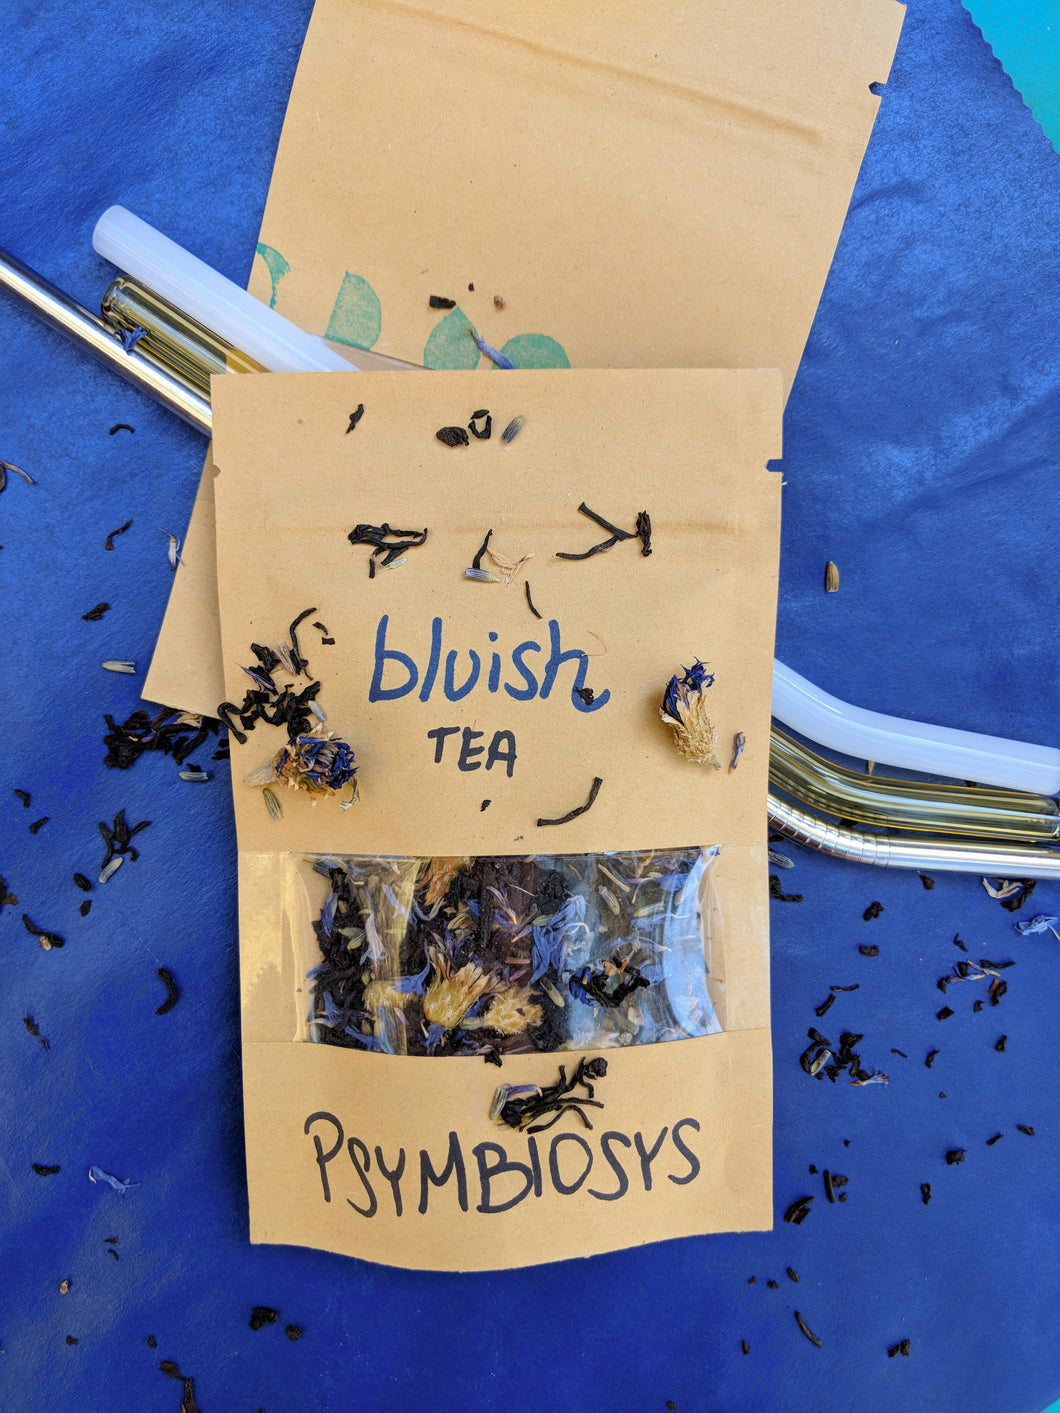 bluish-lemon-lavender-black-herbal-wealth-tea-psymbiosys